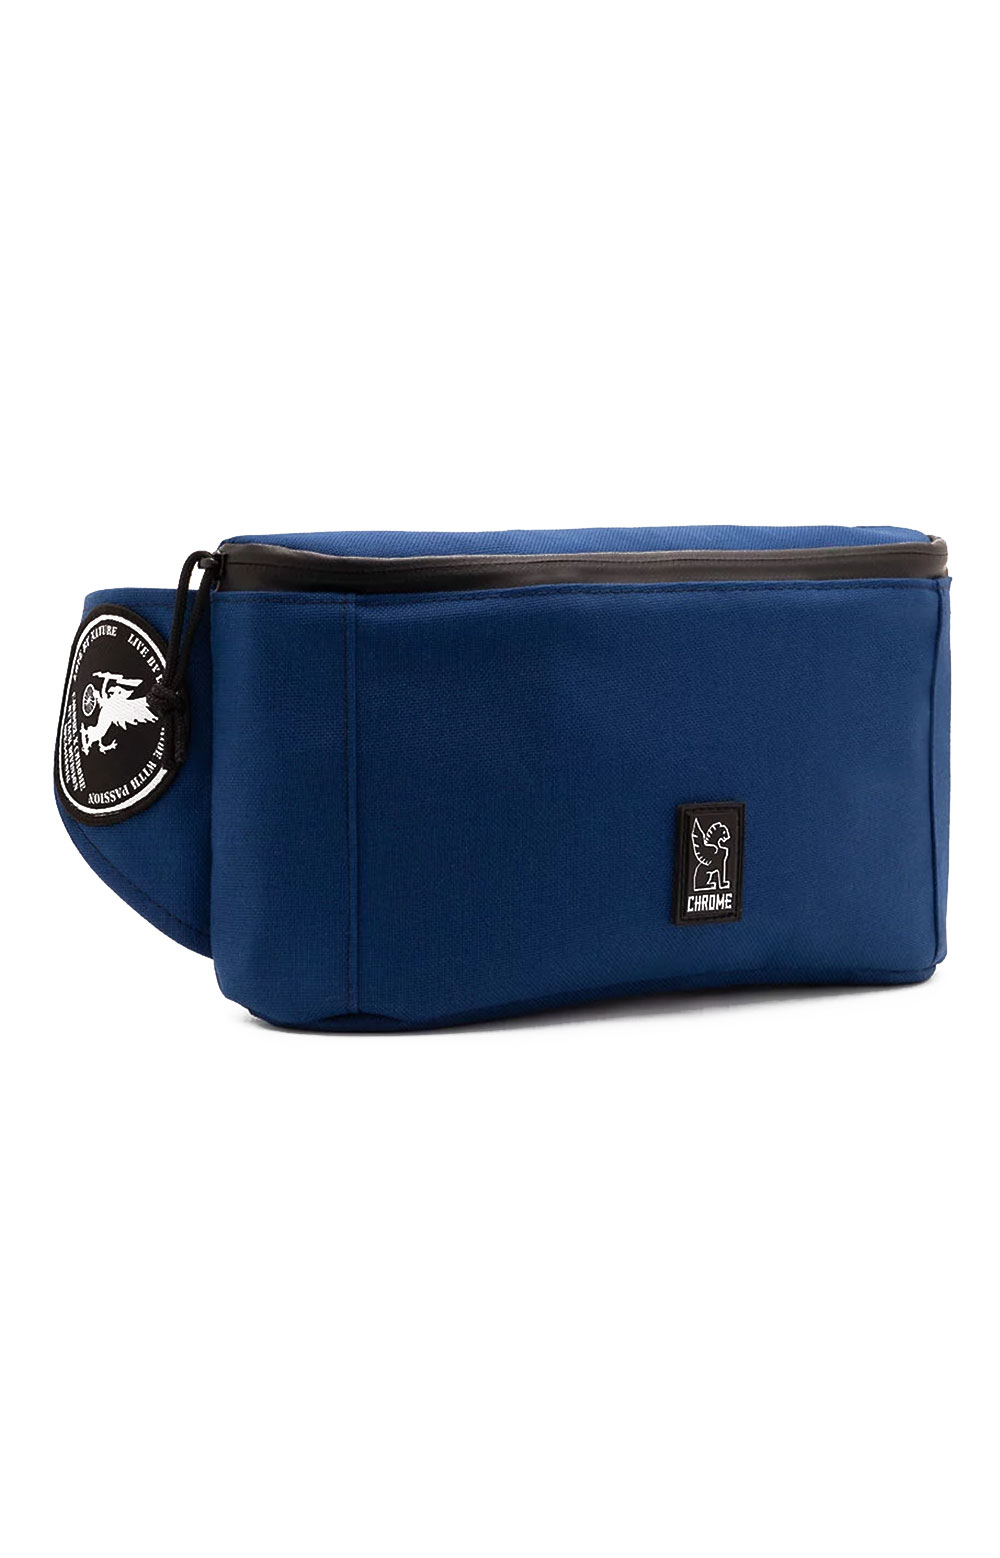 Cardiel Shank Bag - Navy